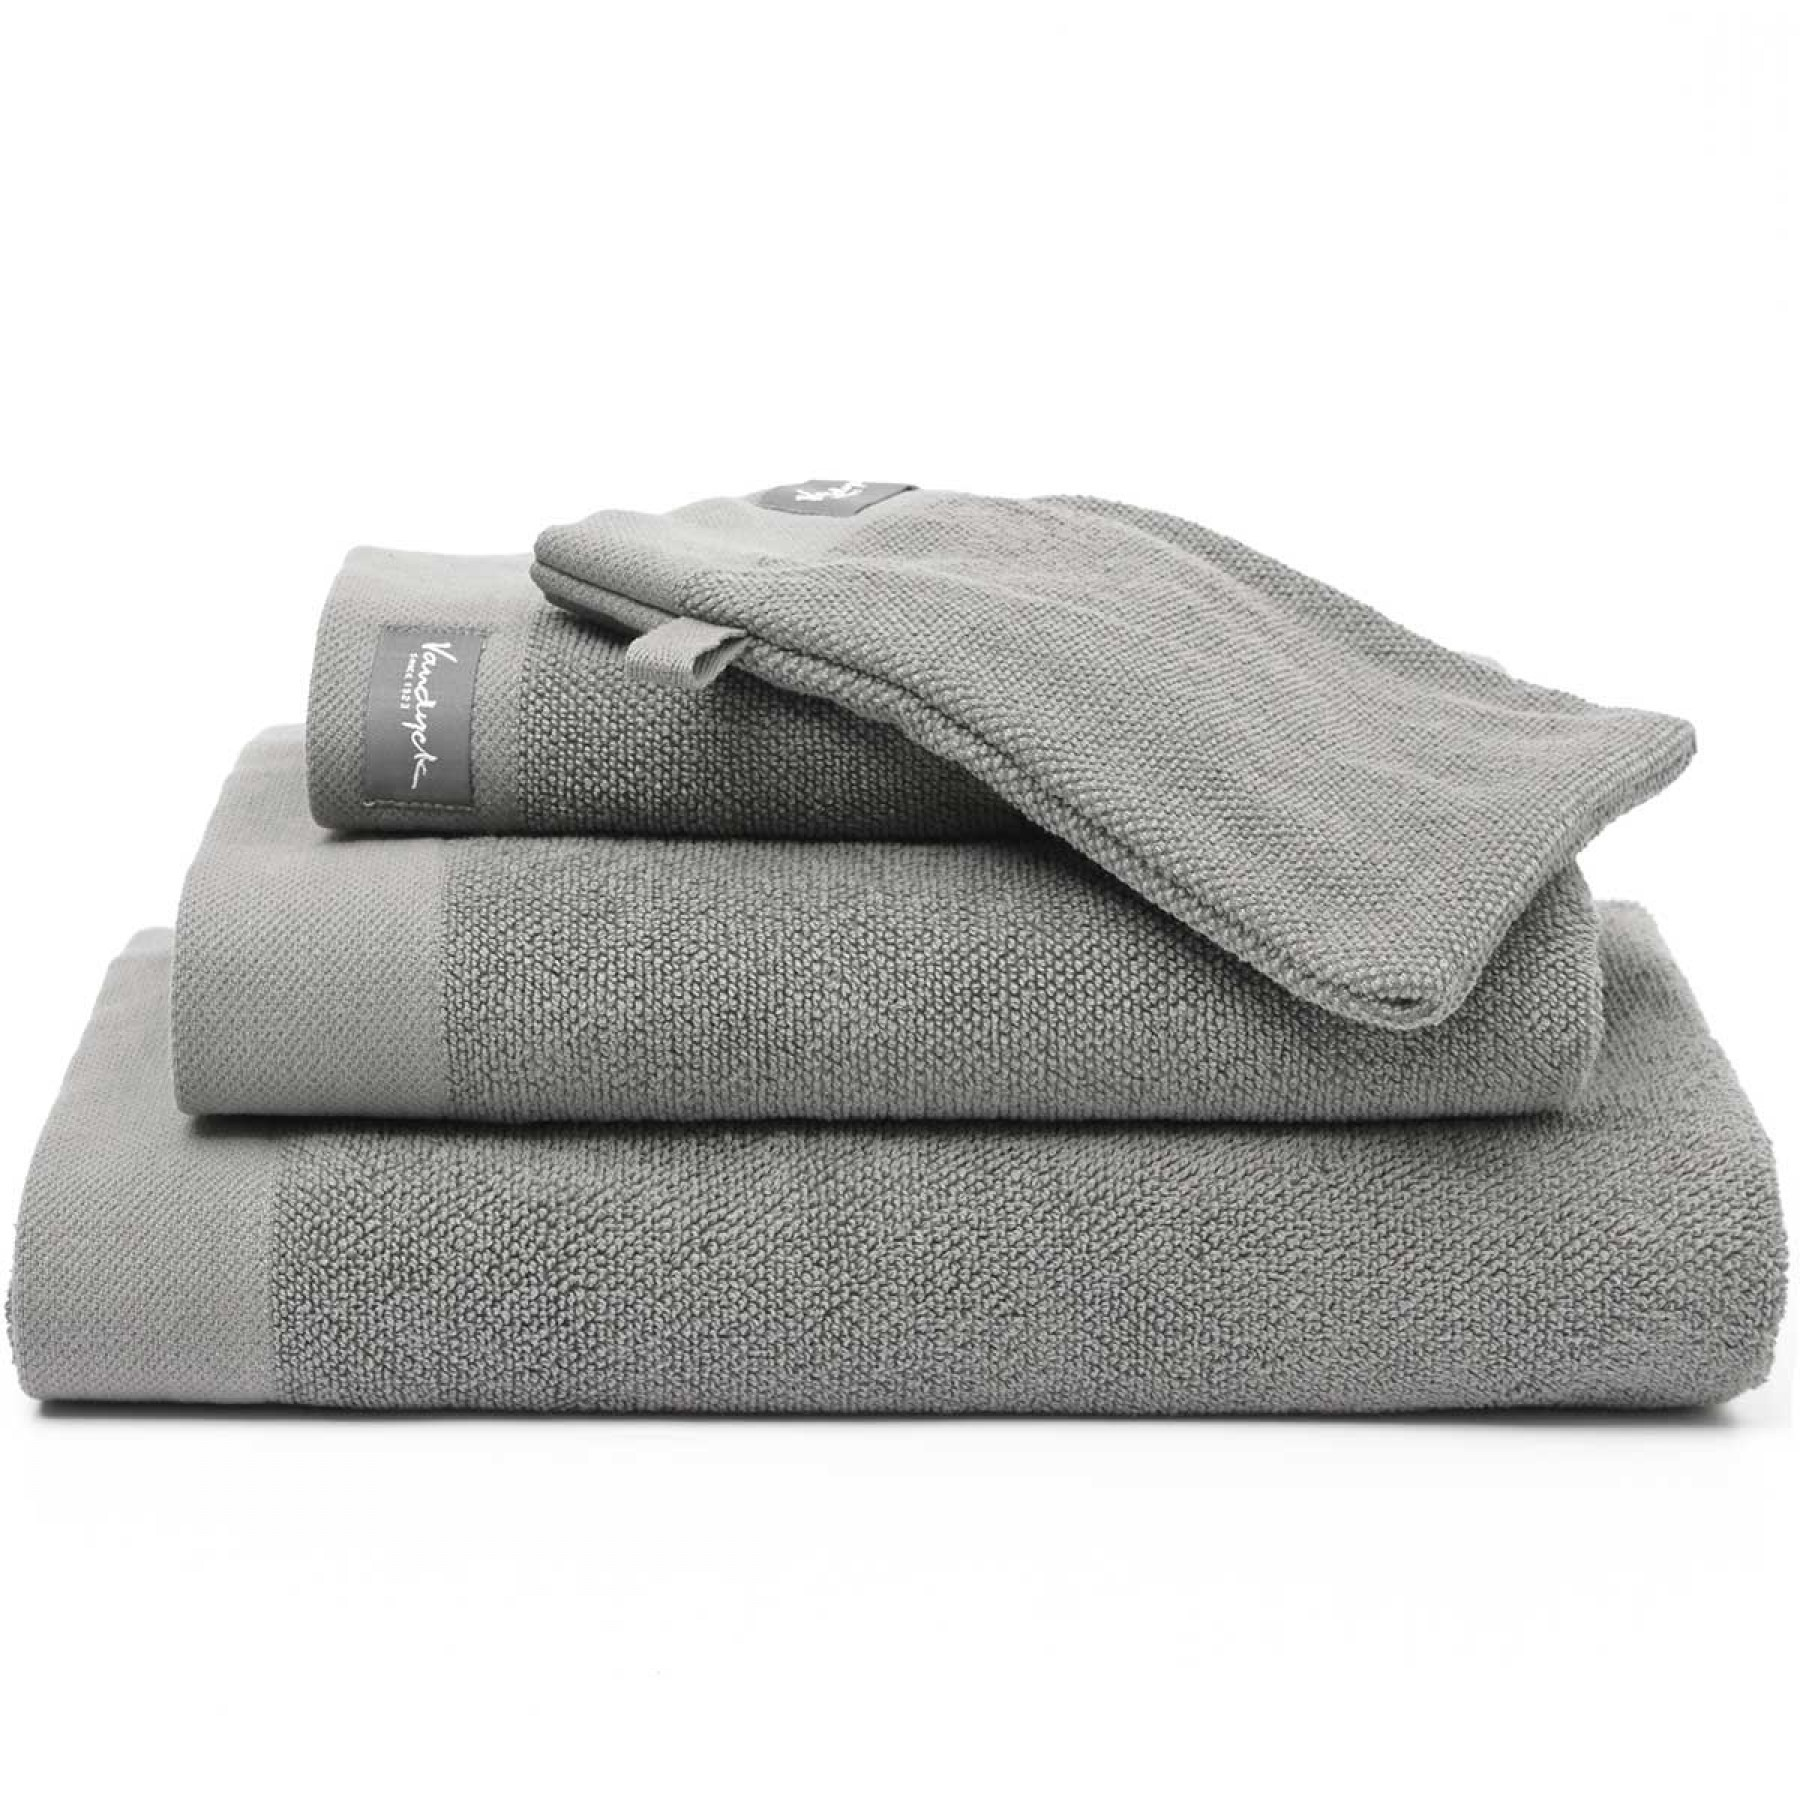 Vandyck Badlaken Uni Home Collection Mole Grey